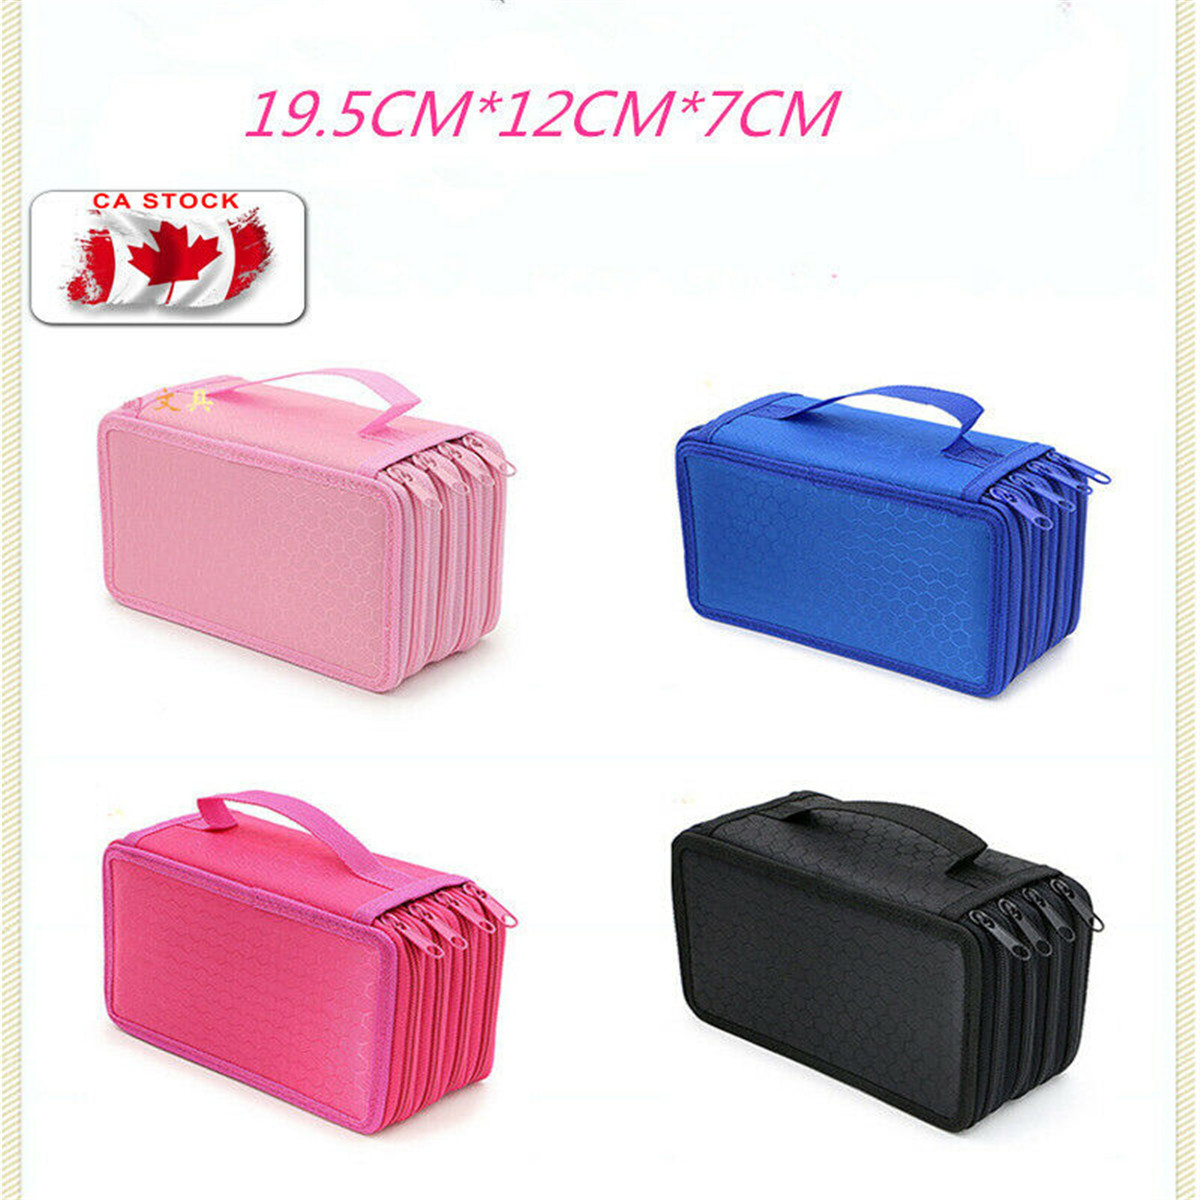 2019 Brand  New Style Fahion Makeup Storage Bag  Solid High Capacity Box Stationary Pen Pouch Bag Pen Pencil Case